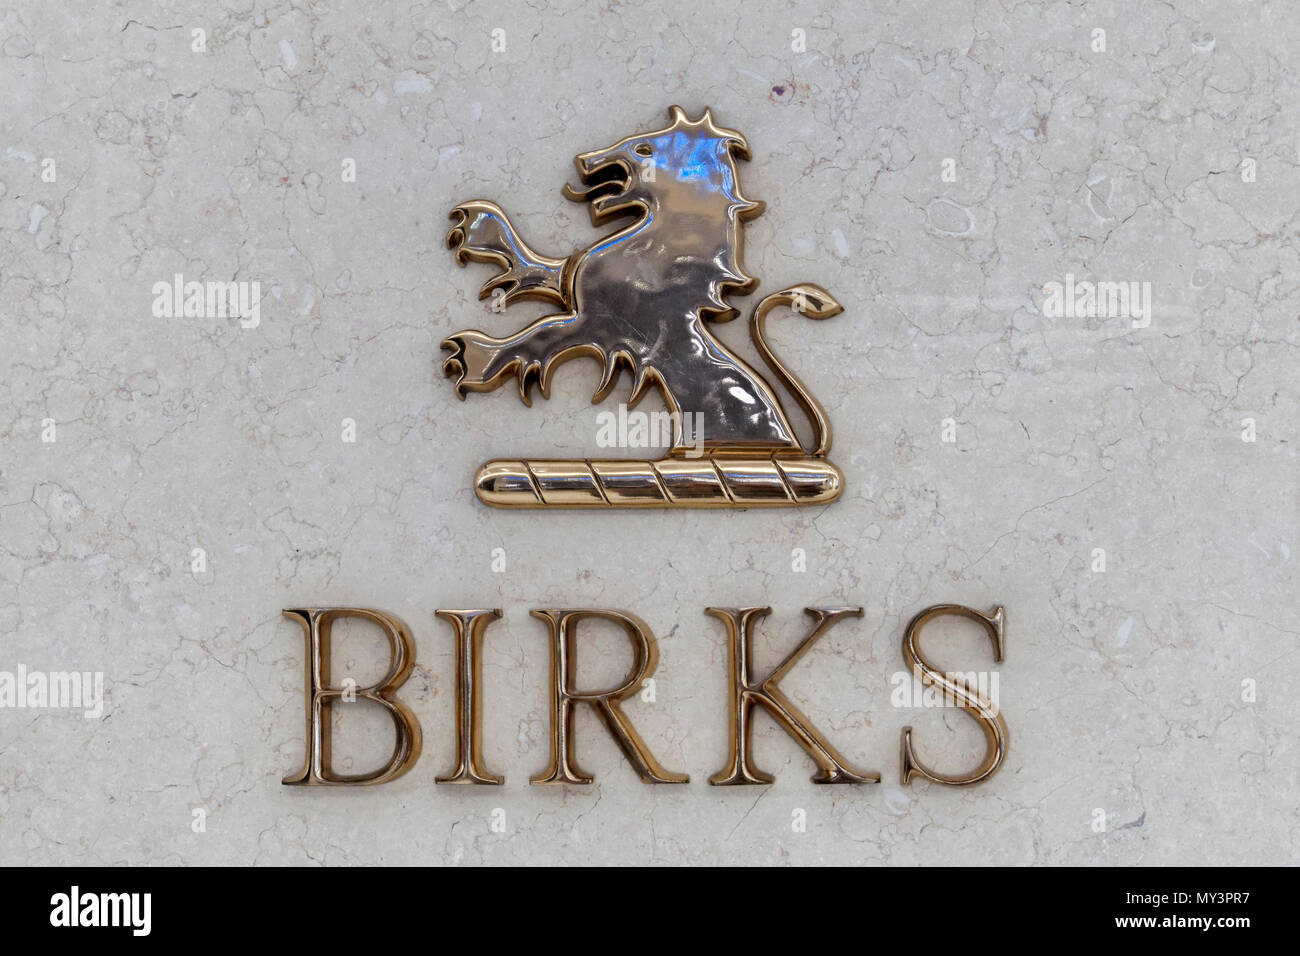 Birks jewelry store sign and logo in Park Royal South shopping mall, West Vancouver, BC, Canada Stock Photo